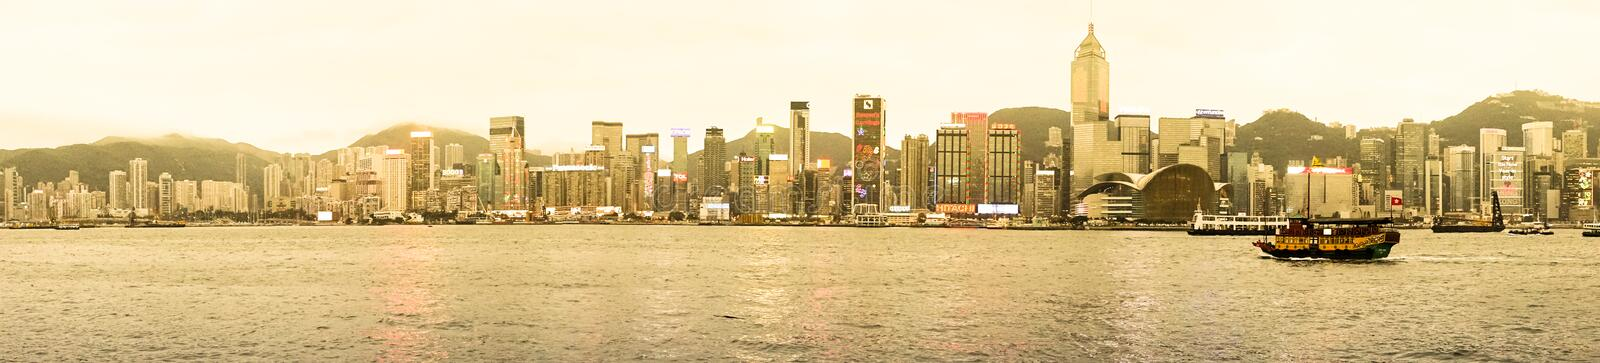 Panorama de Hong Kong foto de stock royalty free